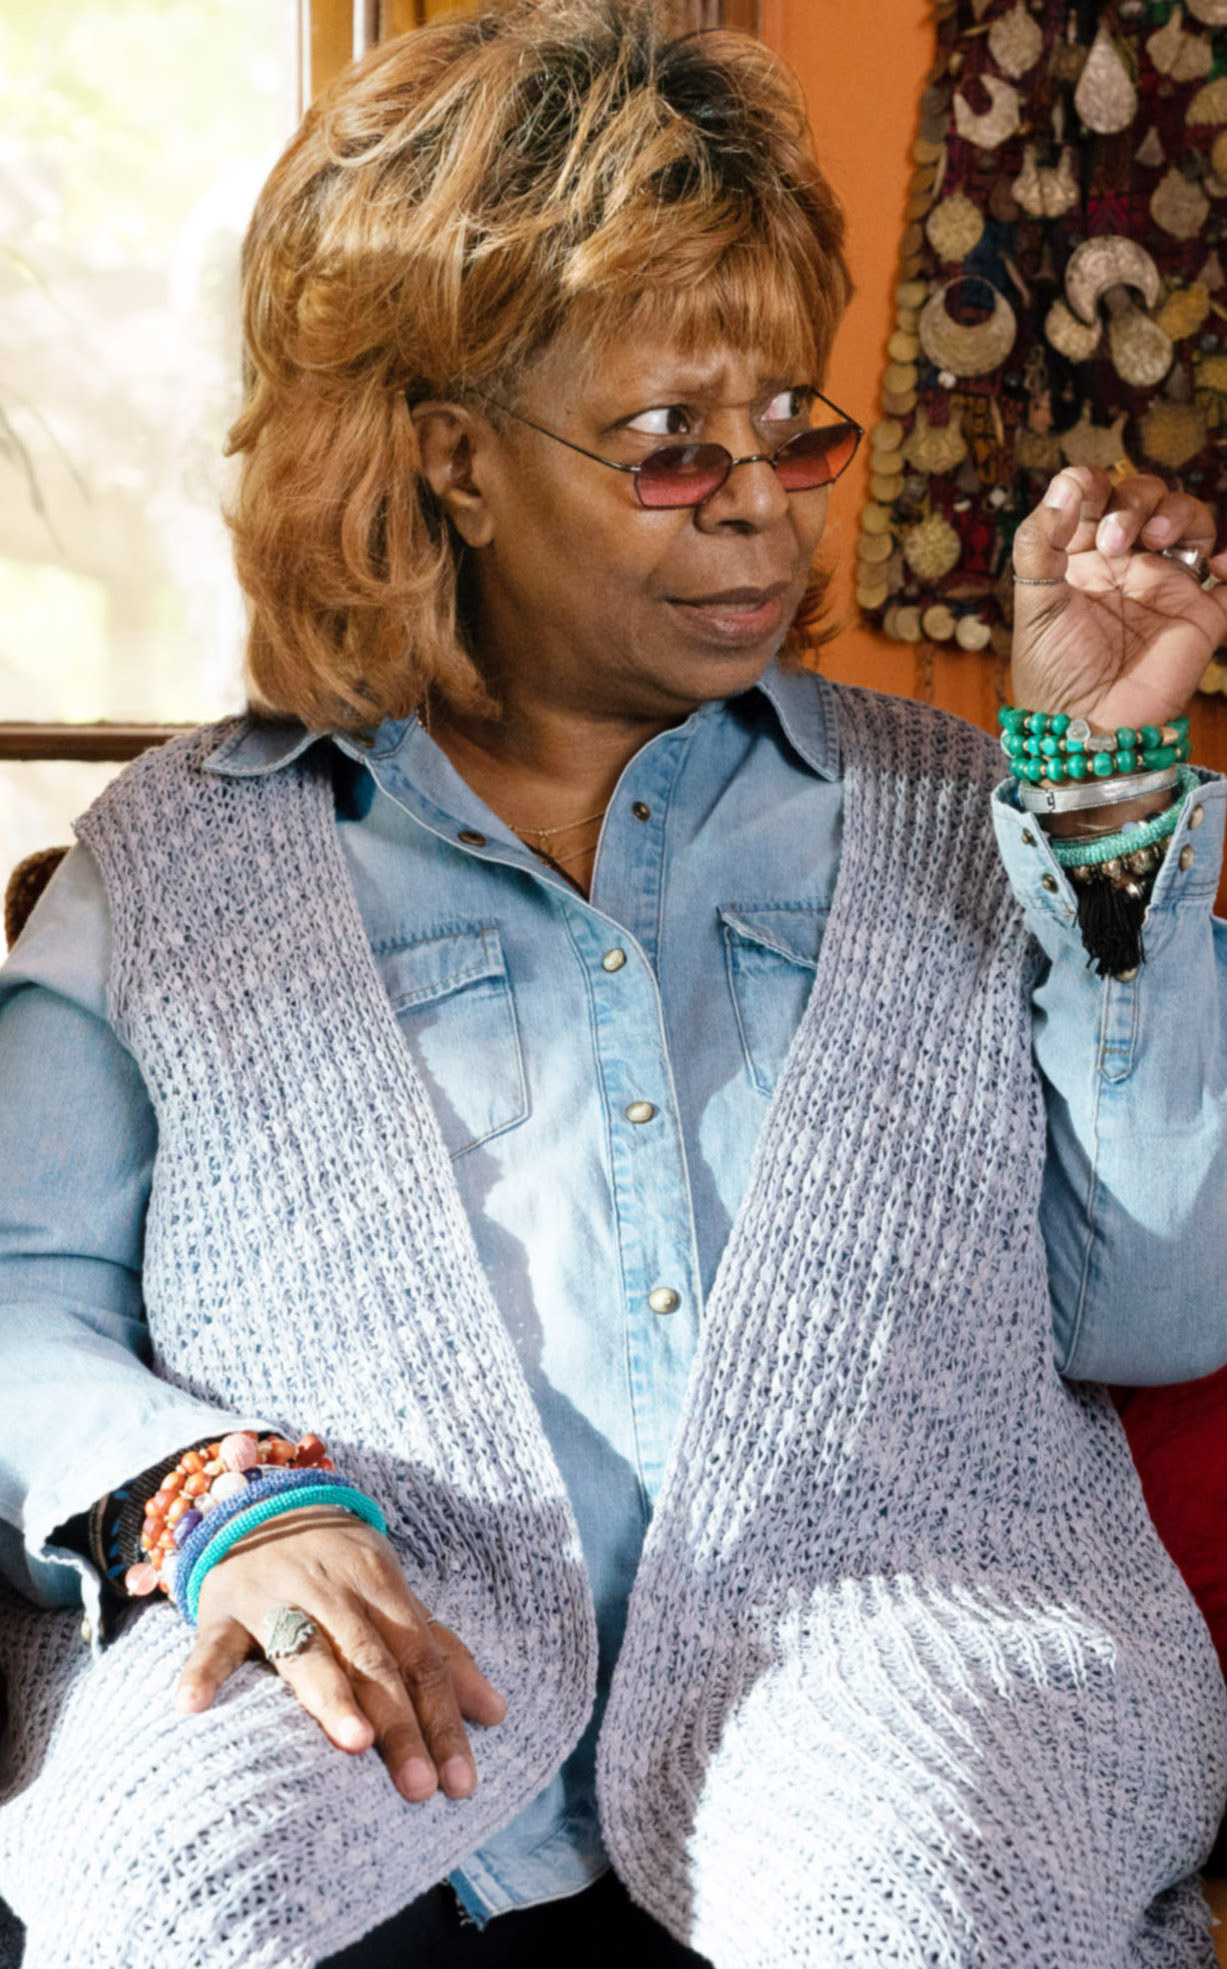 Whoopi Goldberg wearing colorful jewelry, clothes, and glasses while making a puzzled face